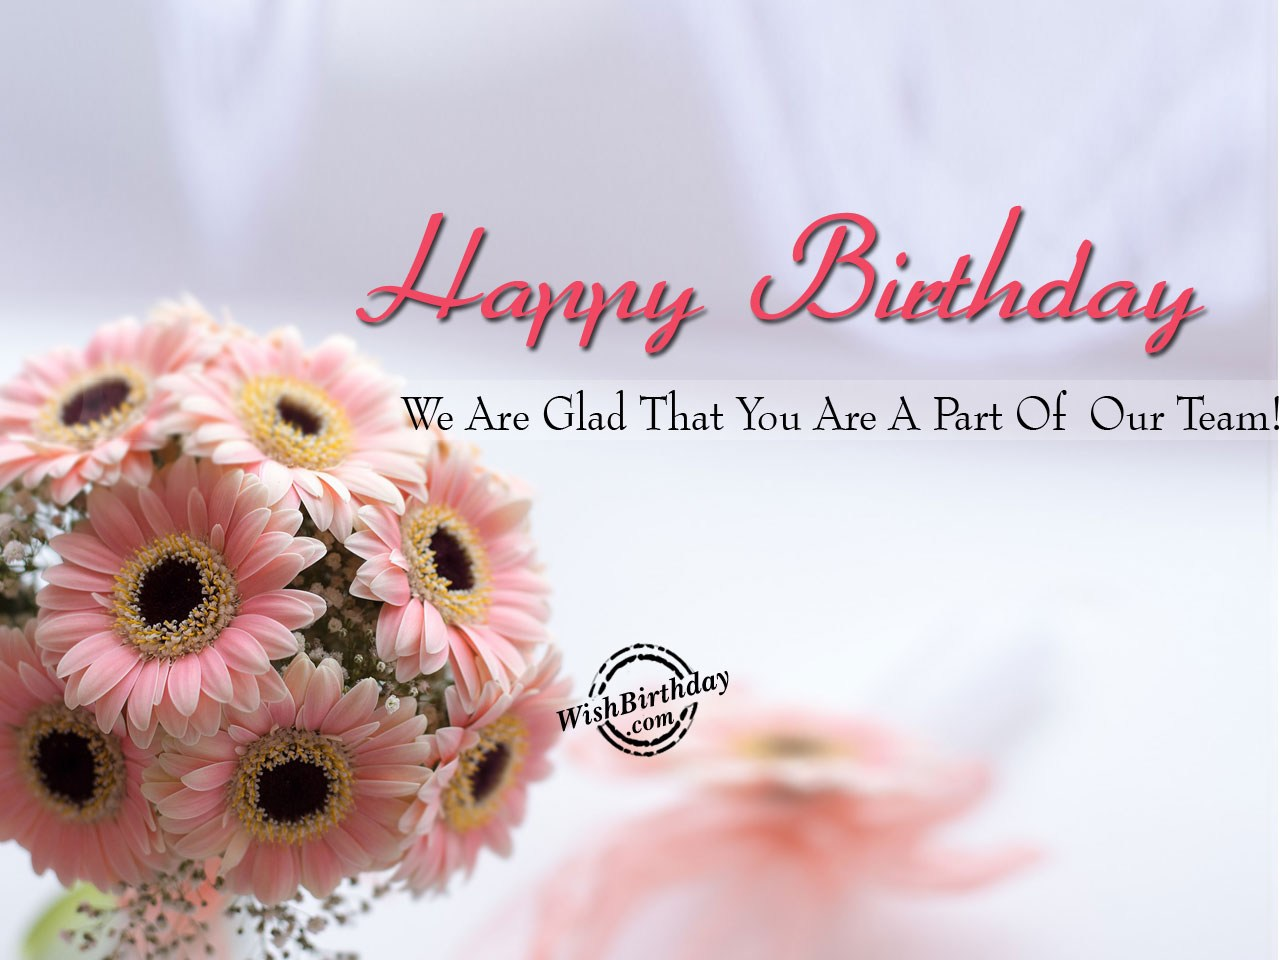 We Are Glad That You Are A Part Of Our Team Happy Birthday Wishes To Team Member